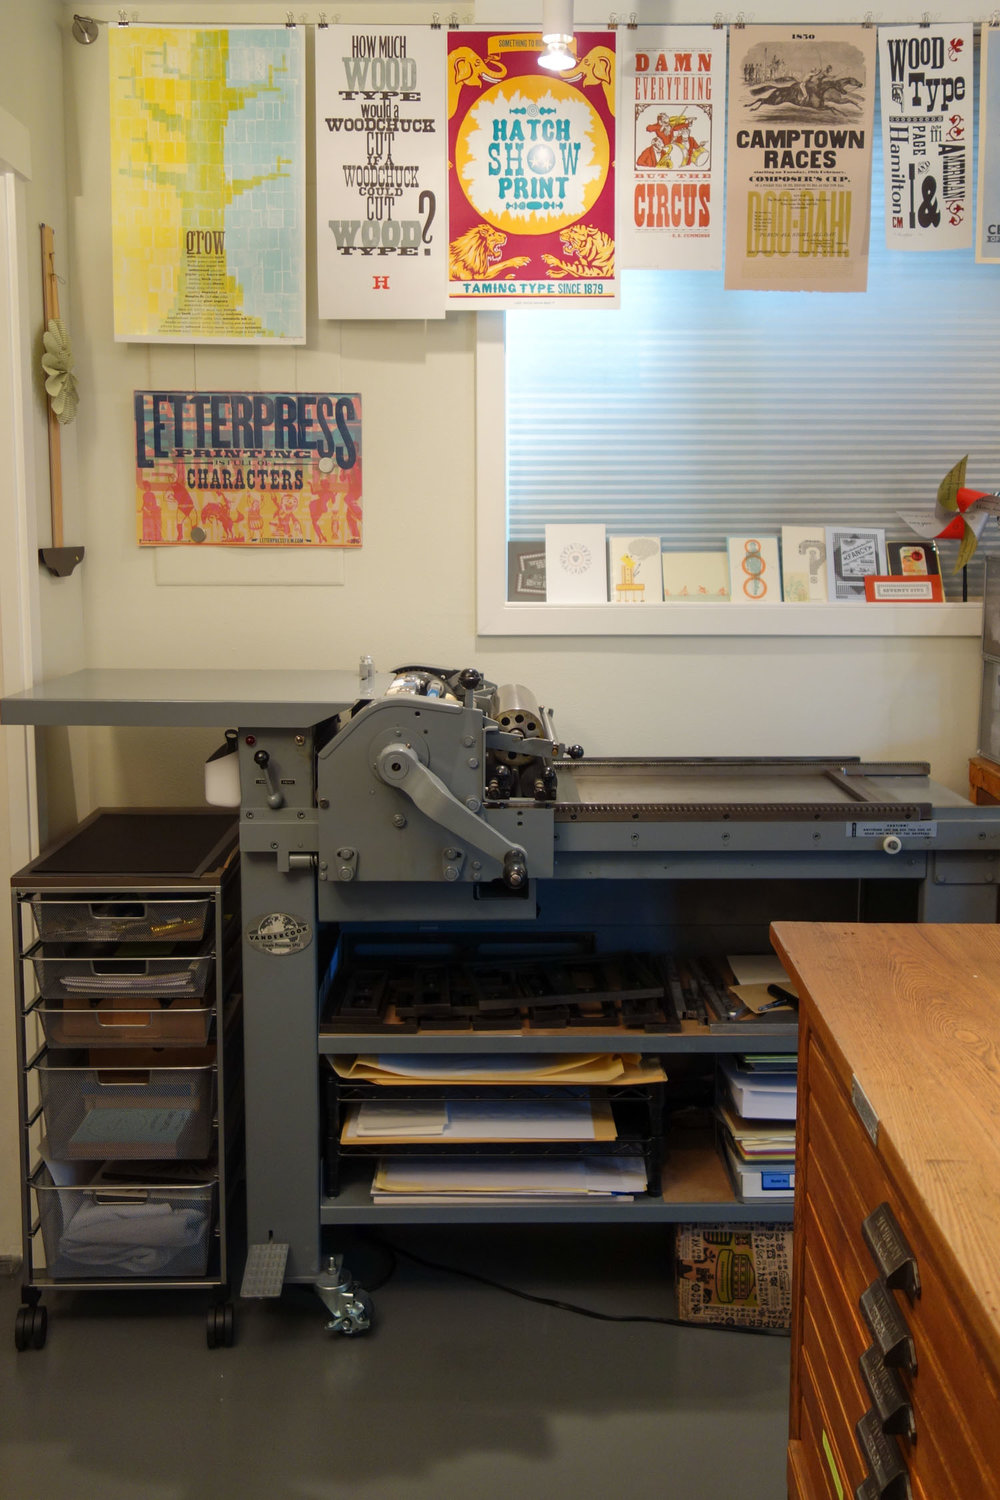 Vandercook SP-15 cylinder printing press